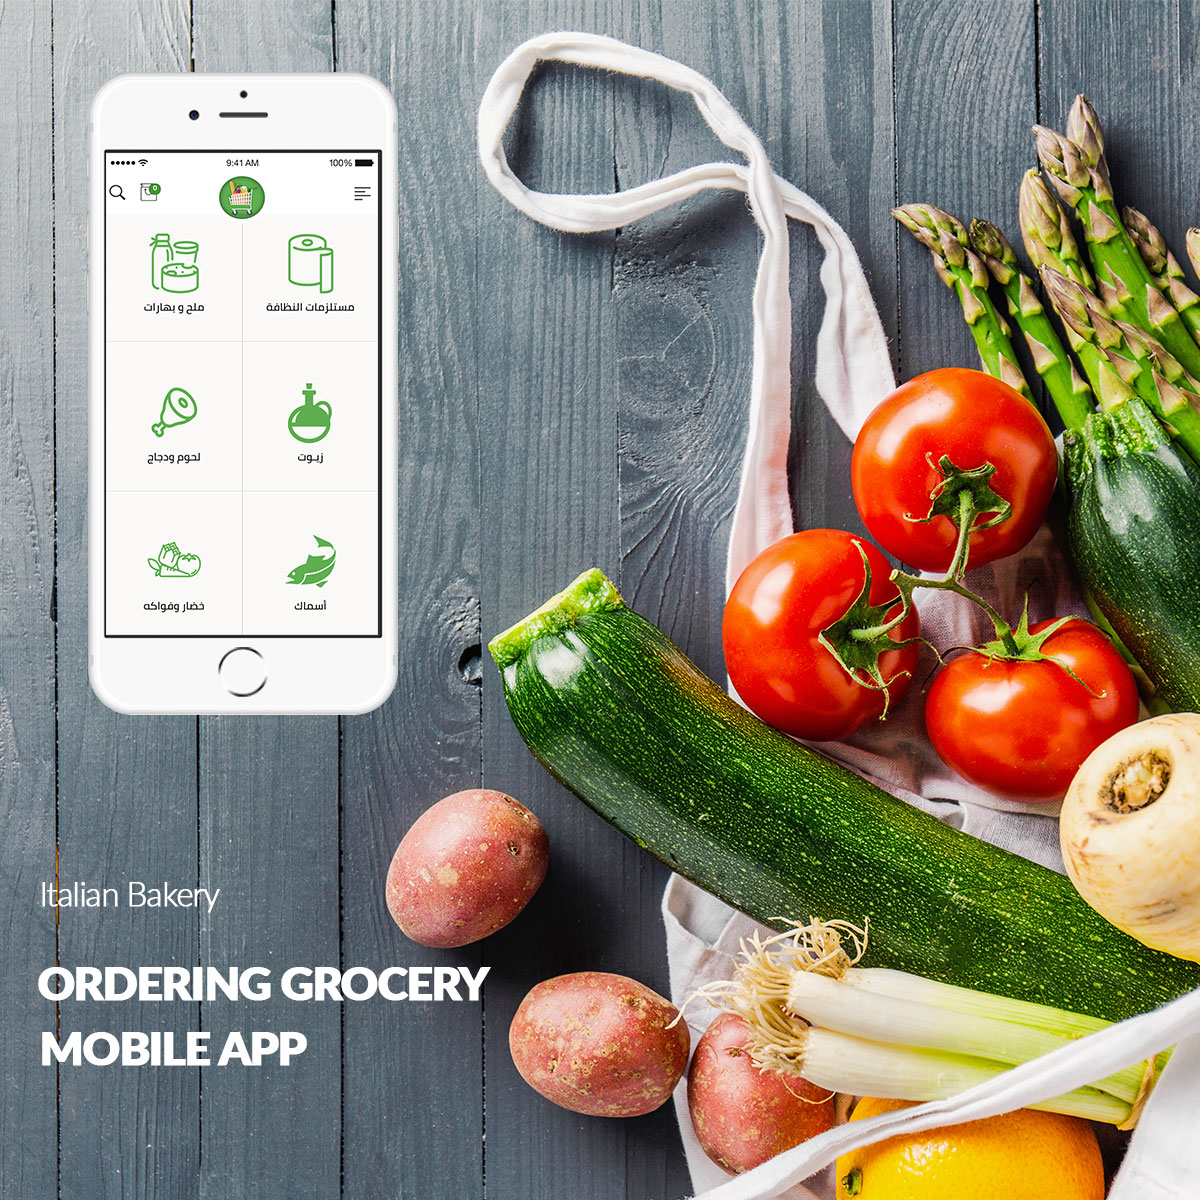 Ordering Grocery Mobile App